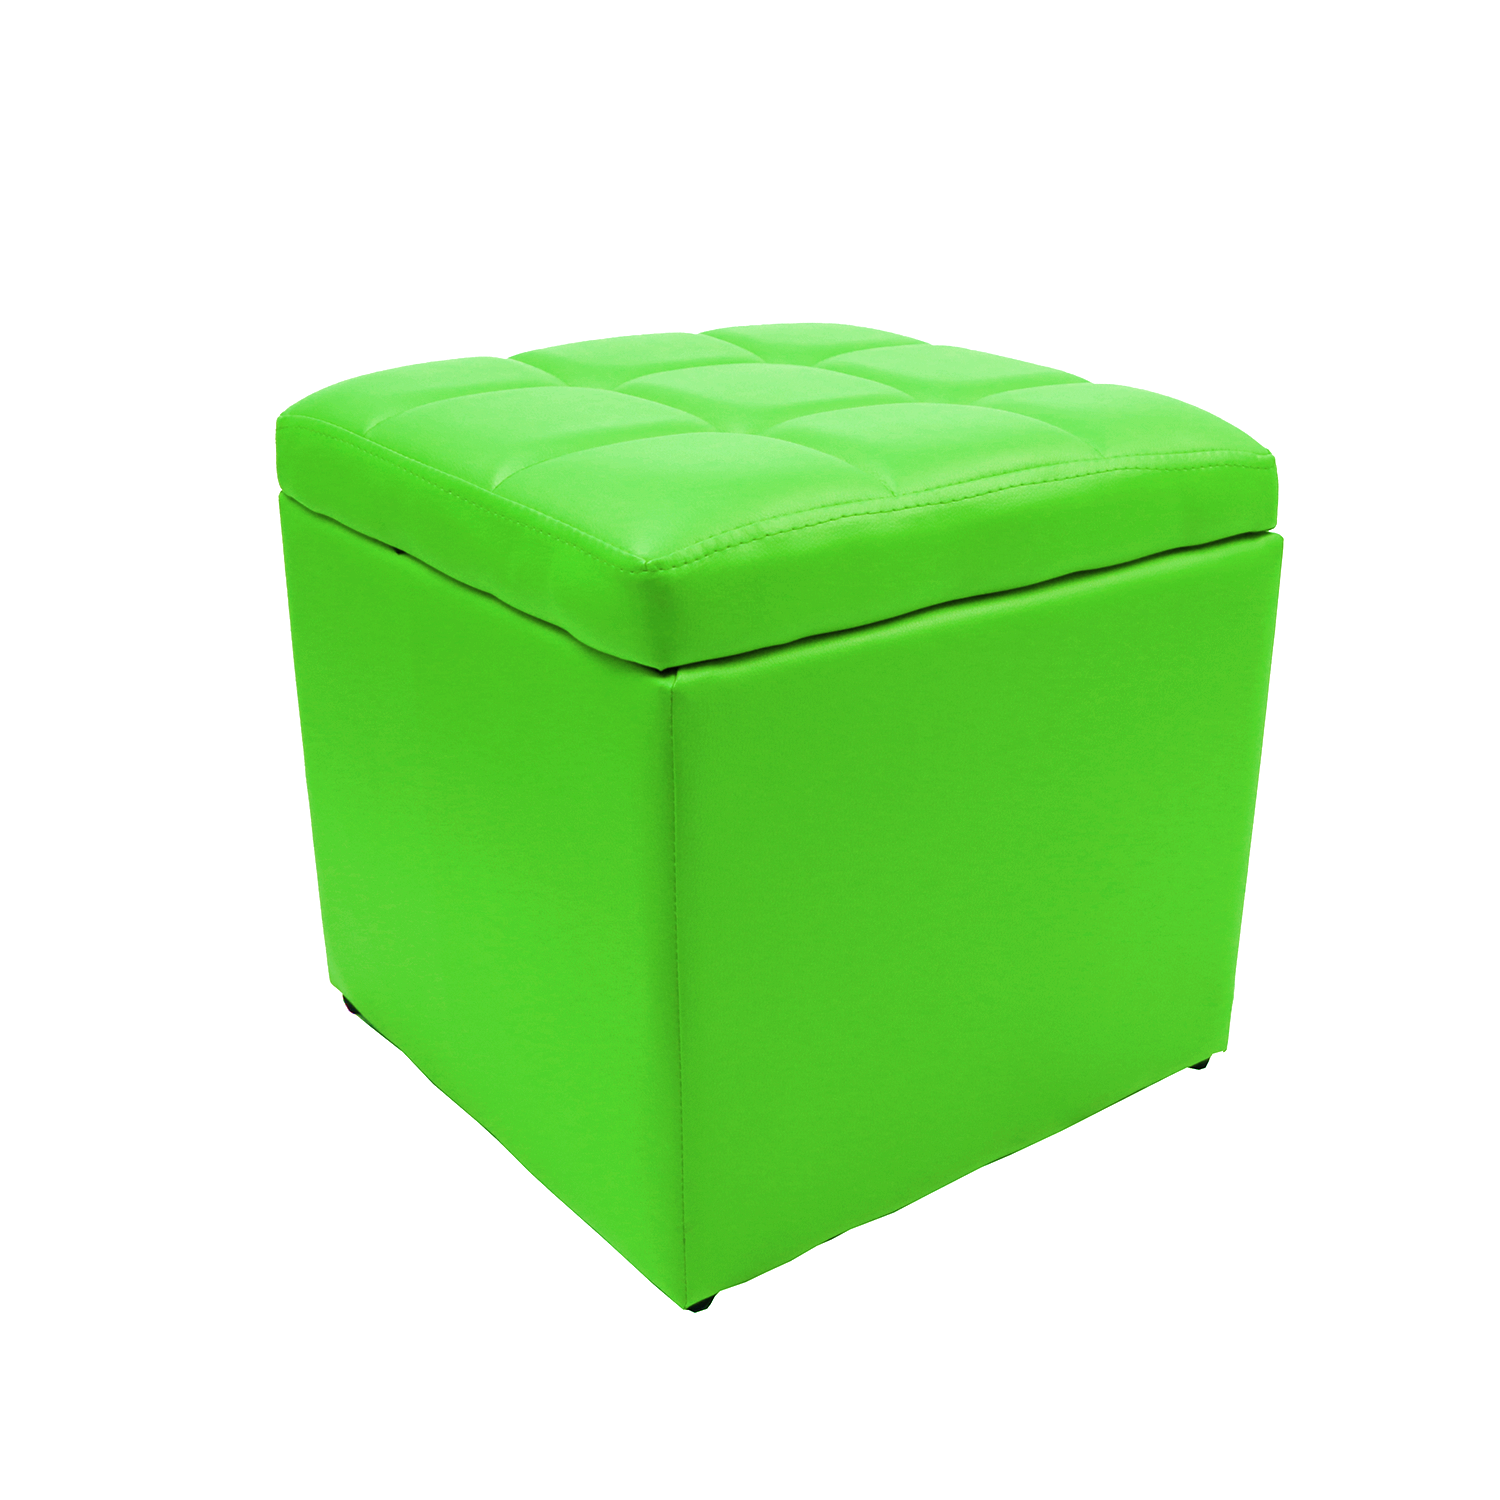 Phenomenal Details About 16X16X16 Unfold Ottoman Cube Coffee Table Bench Footrest Lift Top Lime Green Machost Co Dining Chair Design Ideas Machostcouk